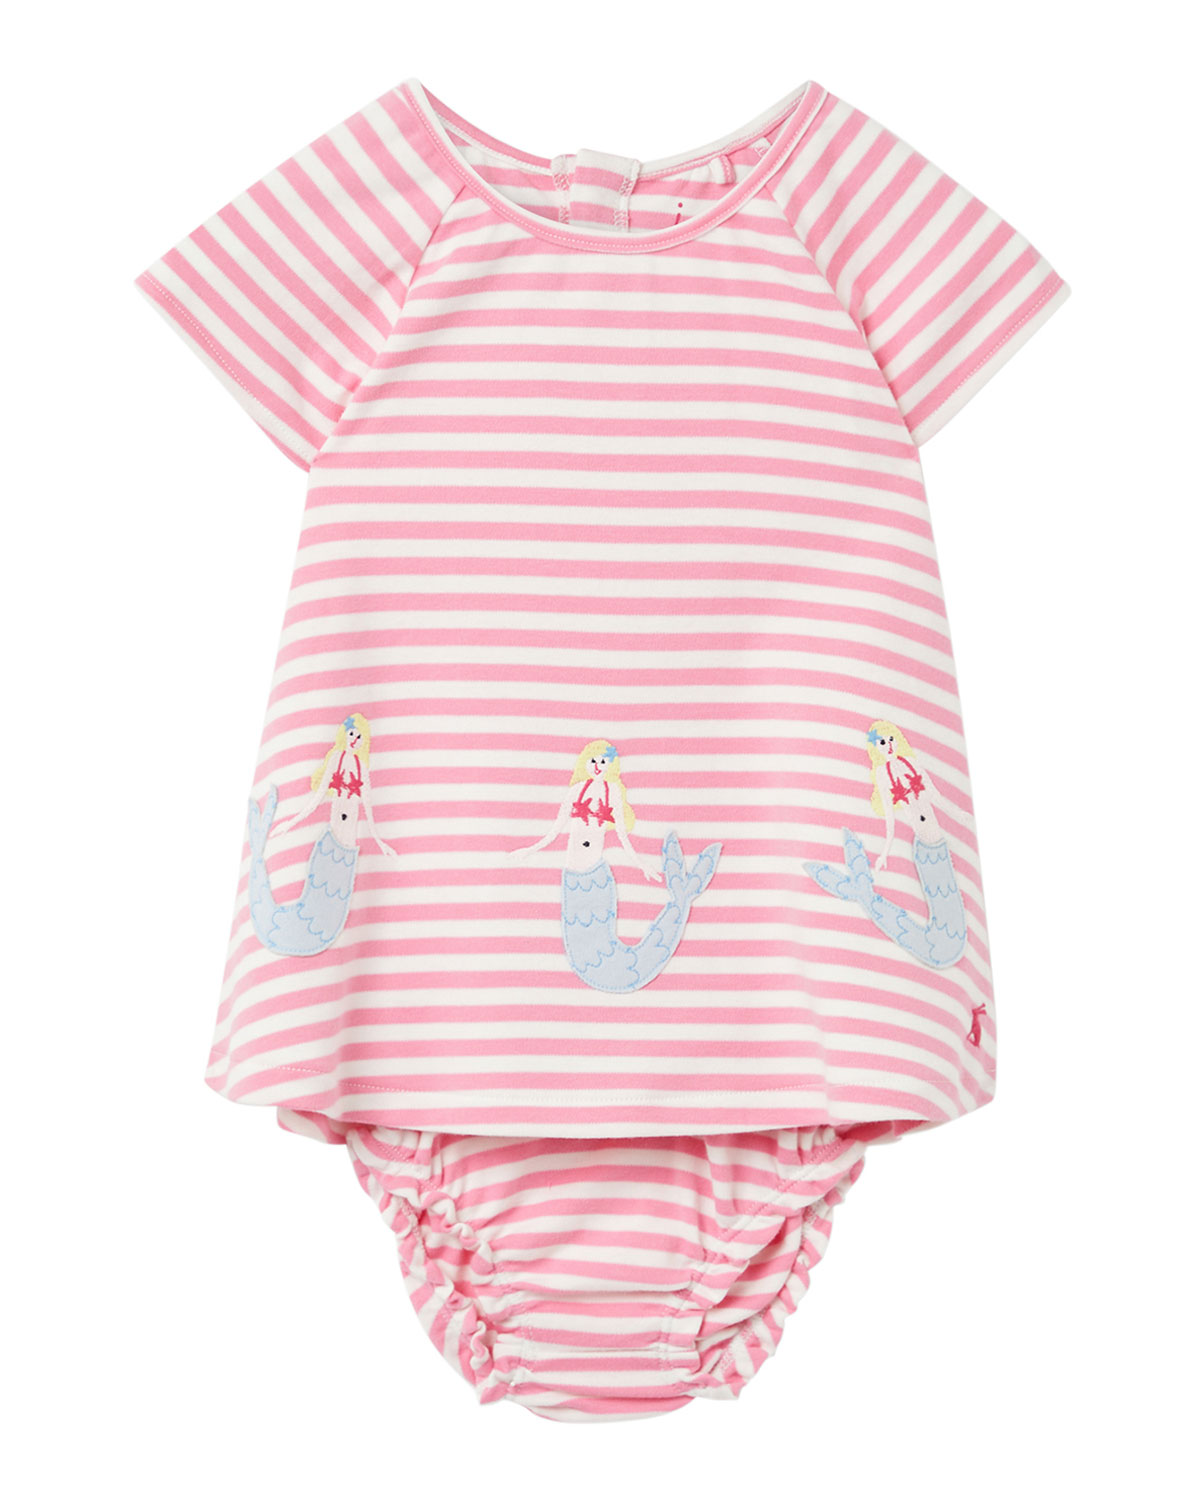 Joules Girl's Twiggy Mermaids Stripe Dress w/ Bloomers, Size 6-24 Months